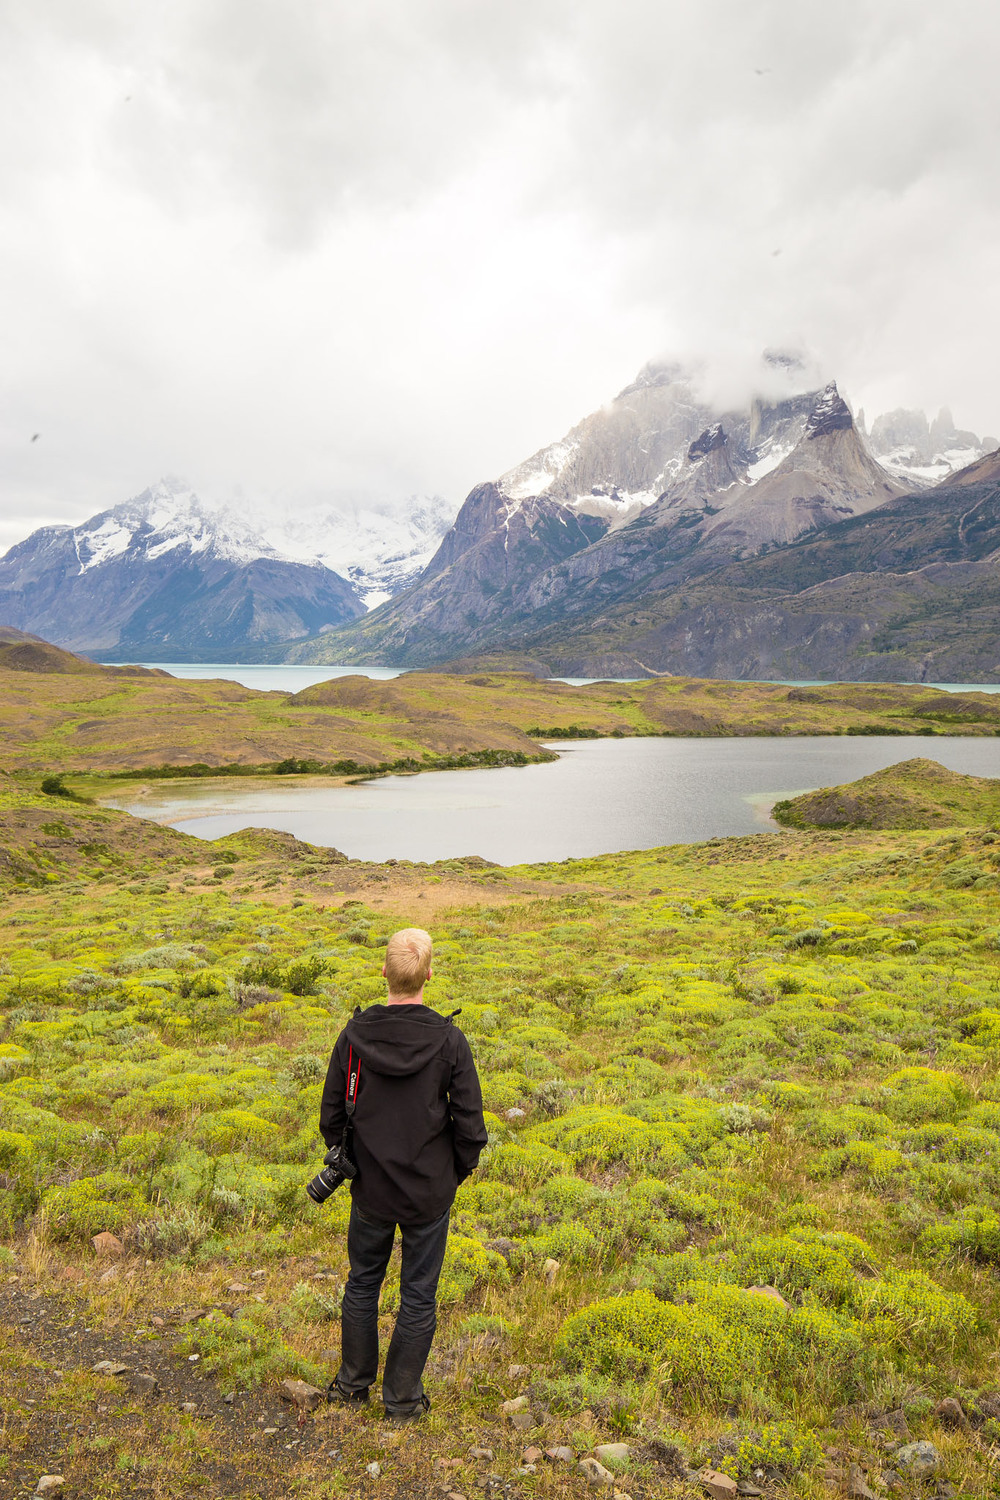 Wedding-Travellers-Overlanding-Destination-Wedding-Chile-Torres-del-Paine-mountain-lake